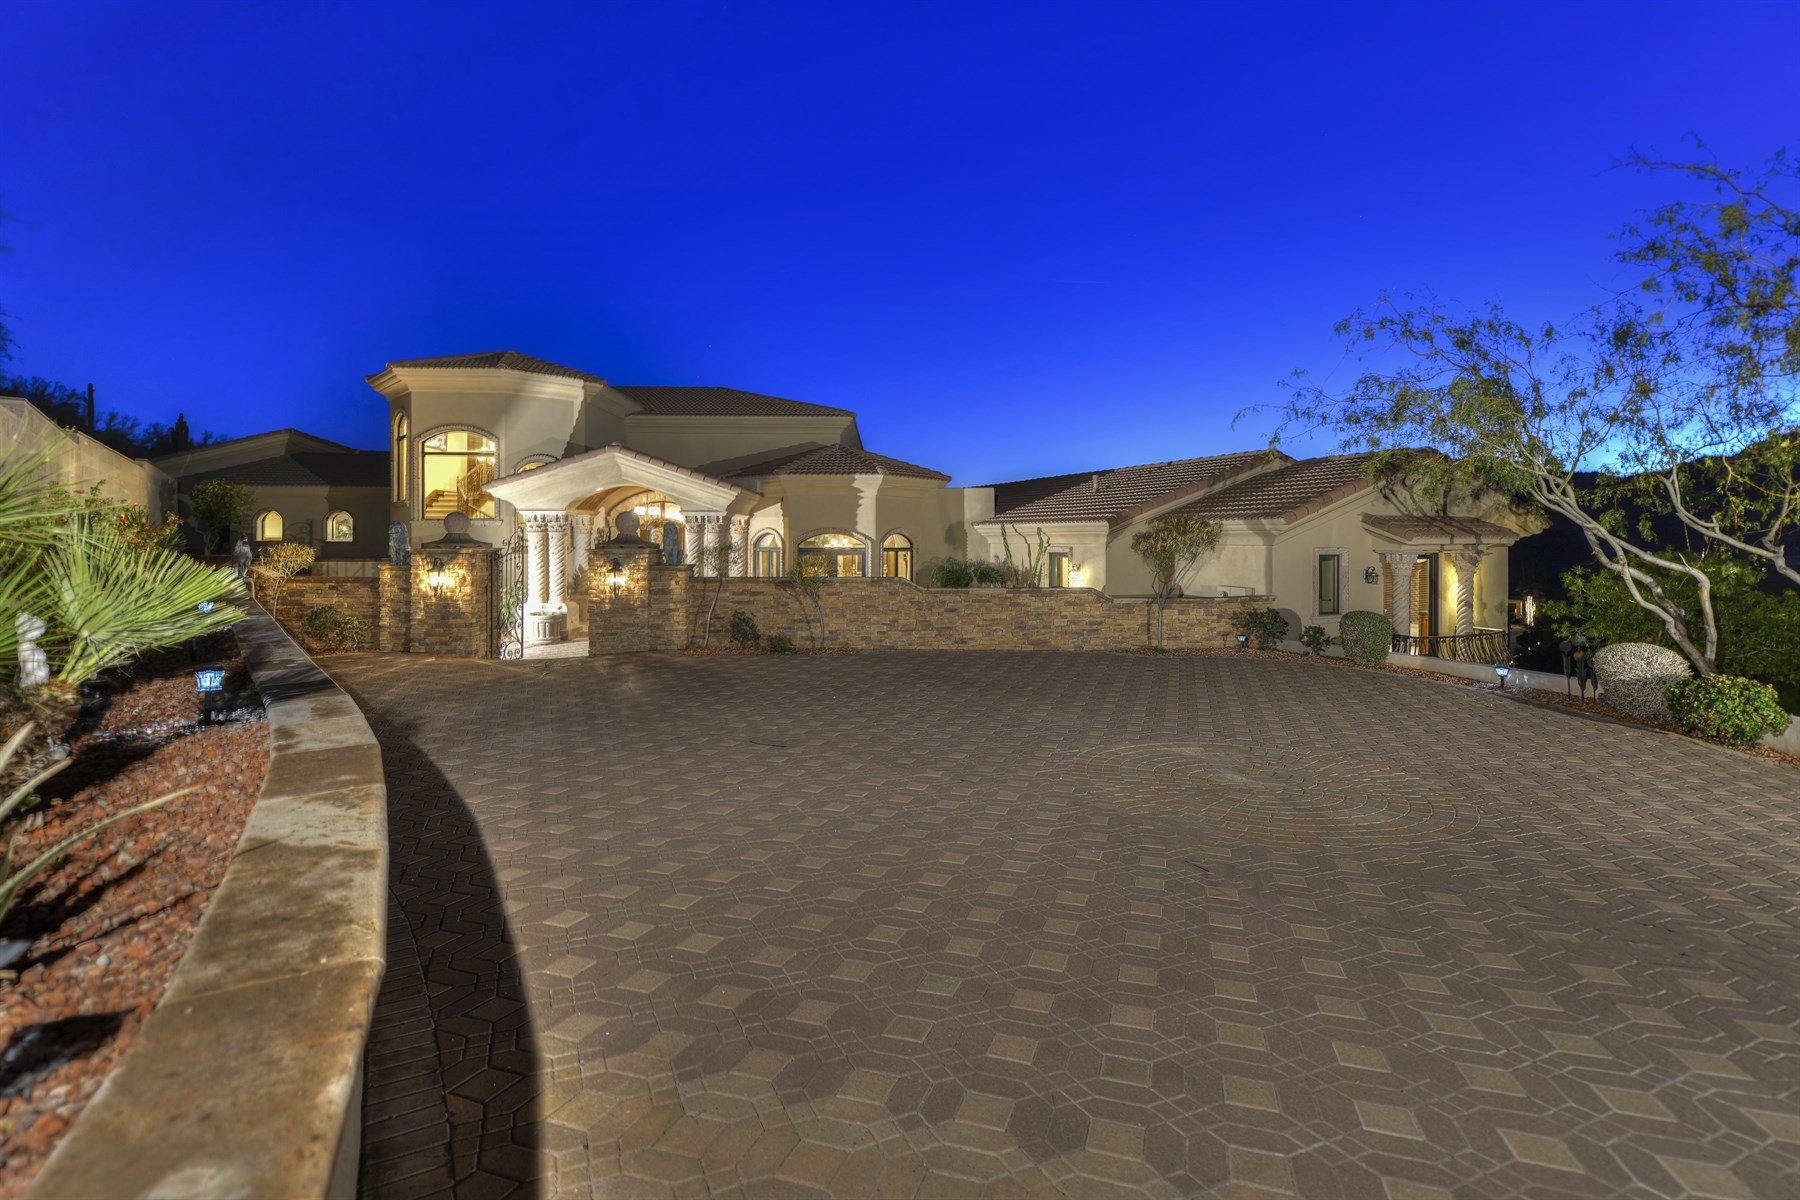 Maison unifamiliale pour l Vente à Beautiful European-inspired estate 7024 N Longlook Rd Paradise Valley, Arizona, 85253 États-Unis